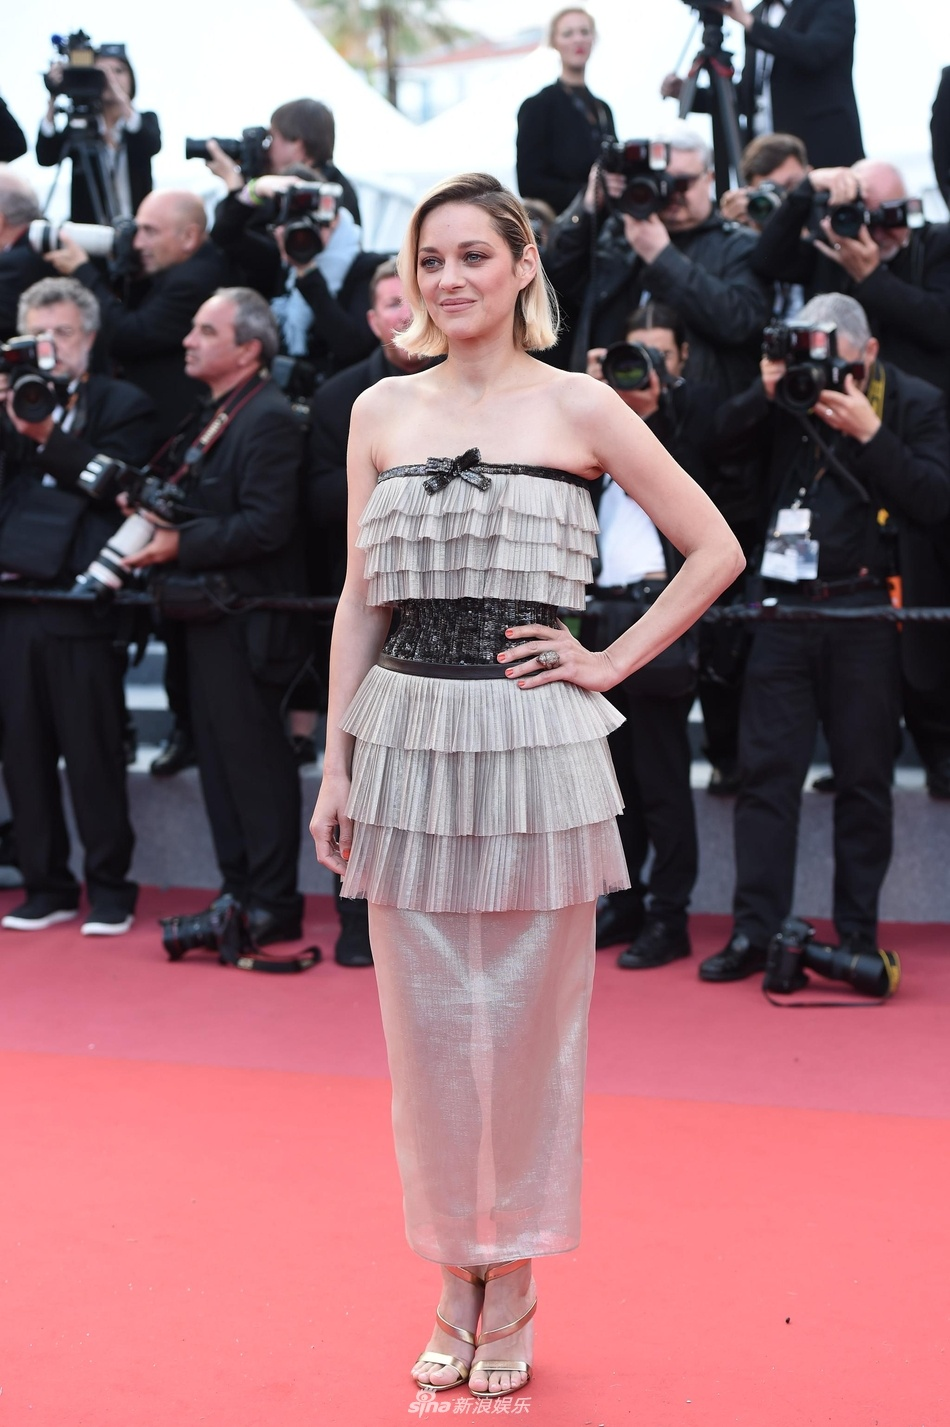 Tham do Cannes anh 12